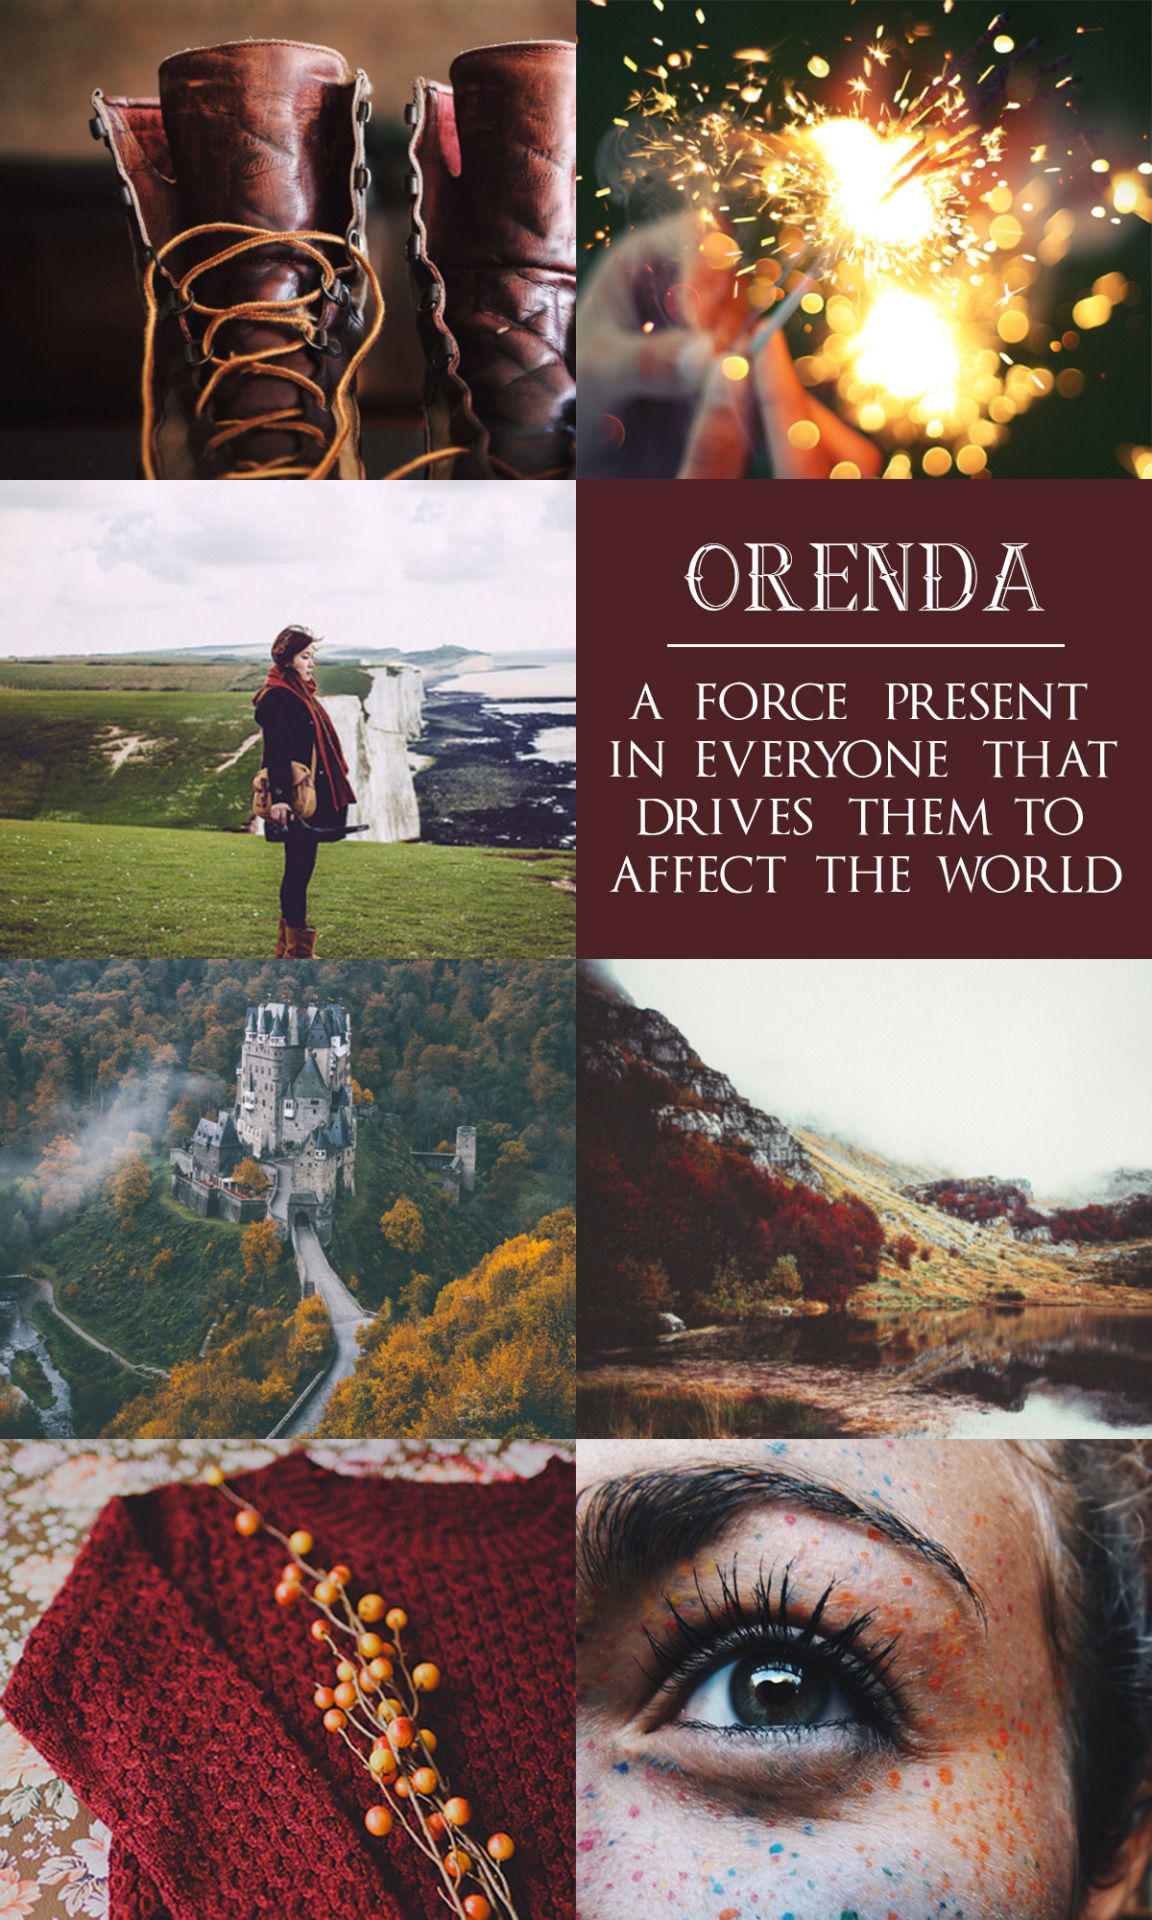 Bookworm Girl Wallpaper Gryffindor Aesthetic All Things Harry Potter In 2019